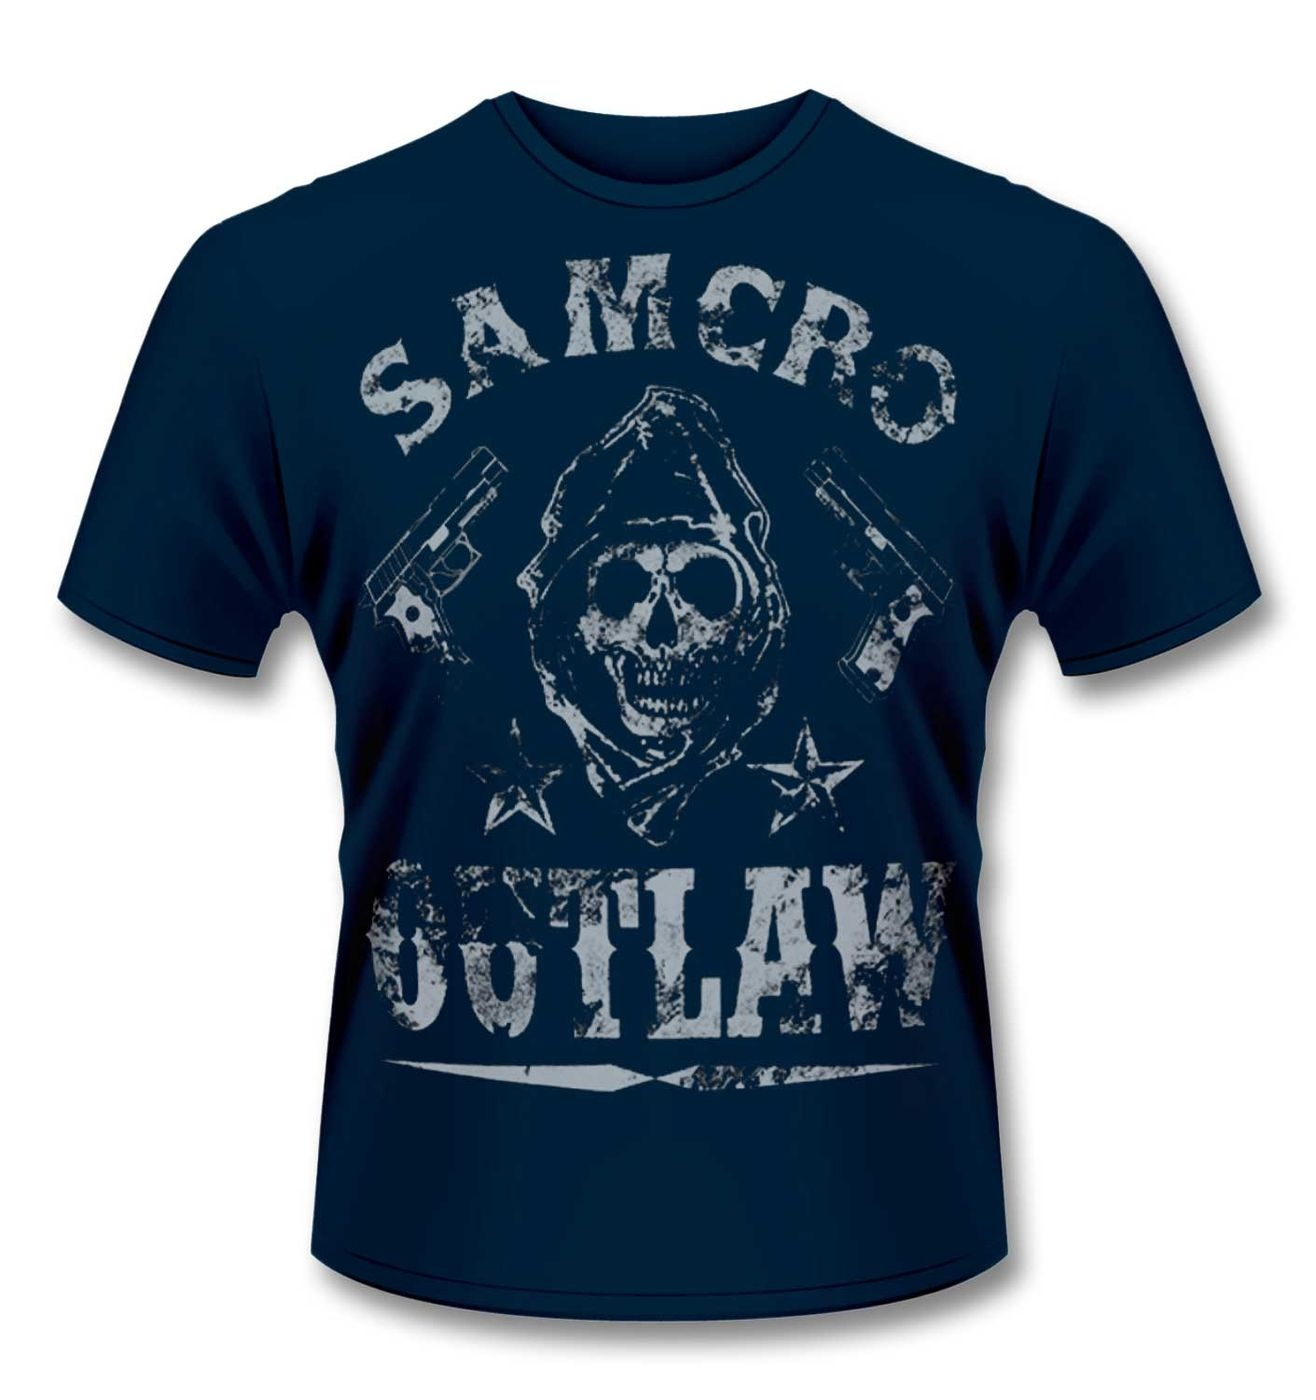 Official Sons Of Anarchy Outlaw t-shirt